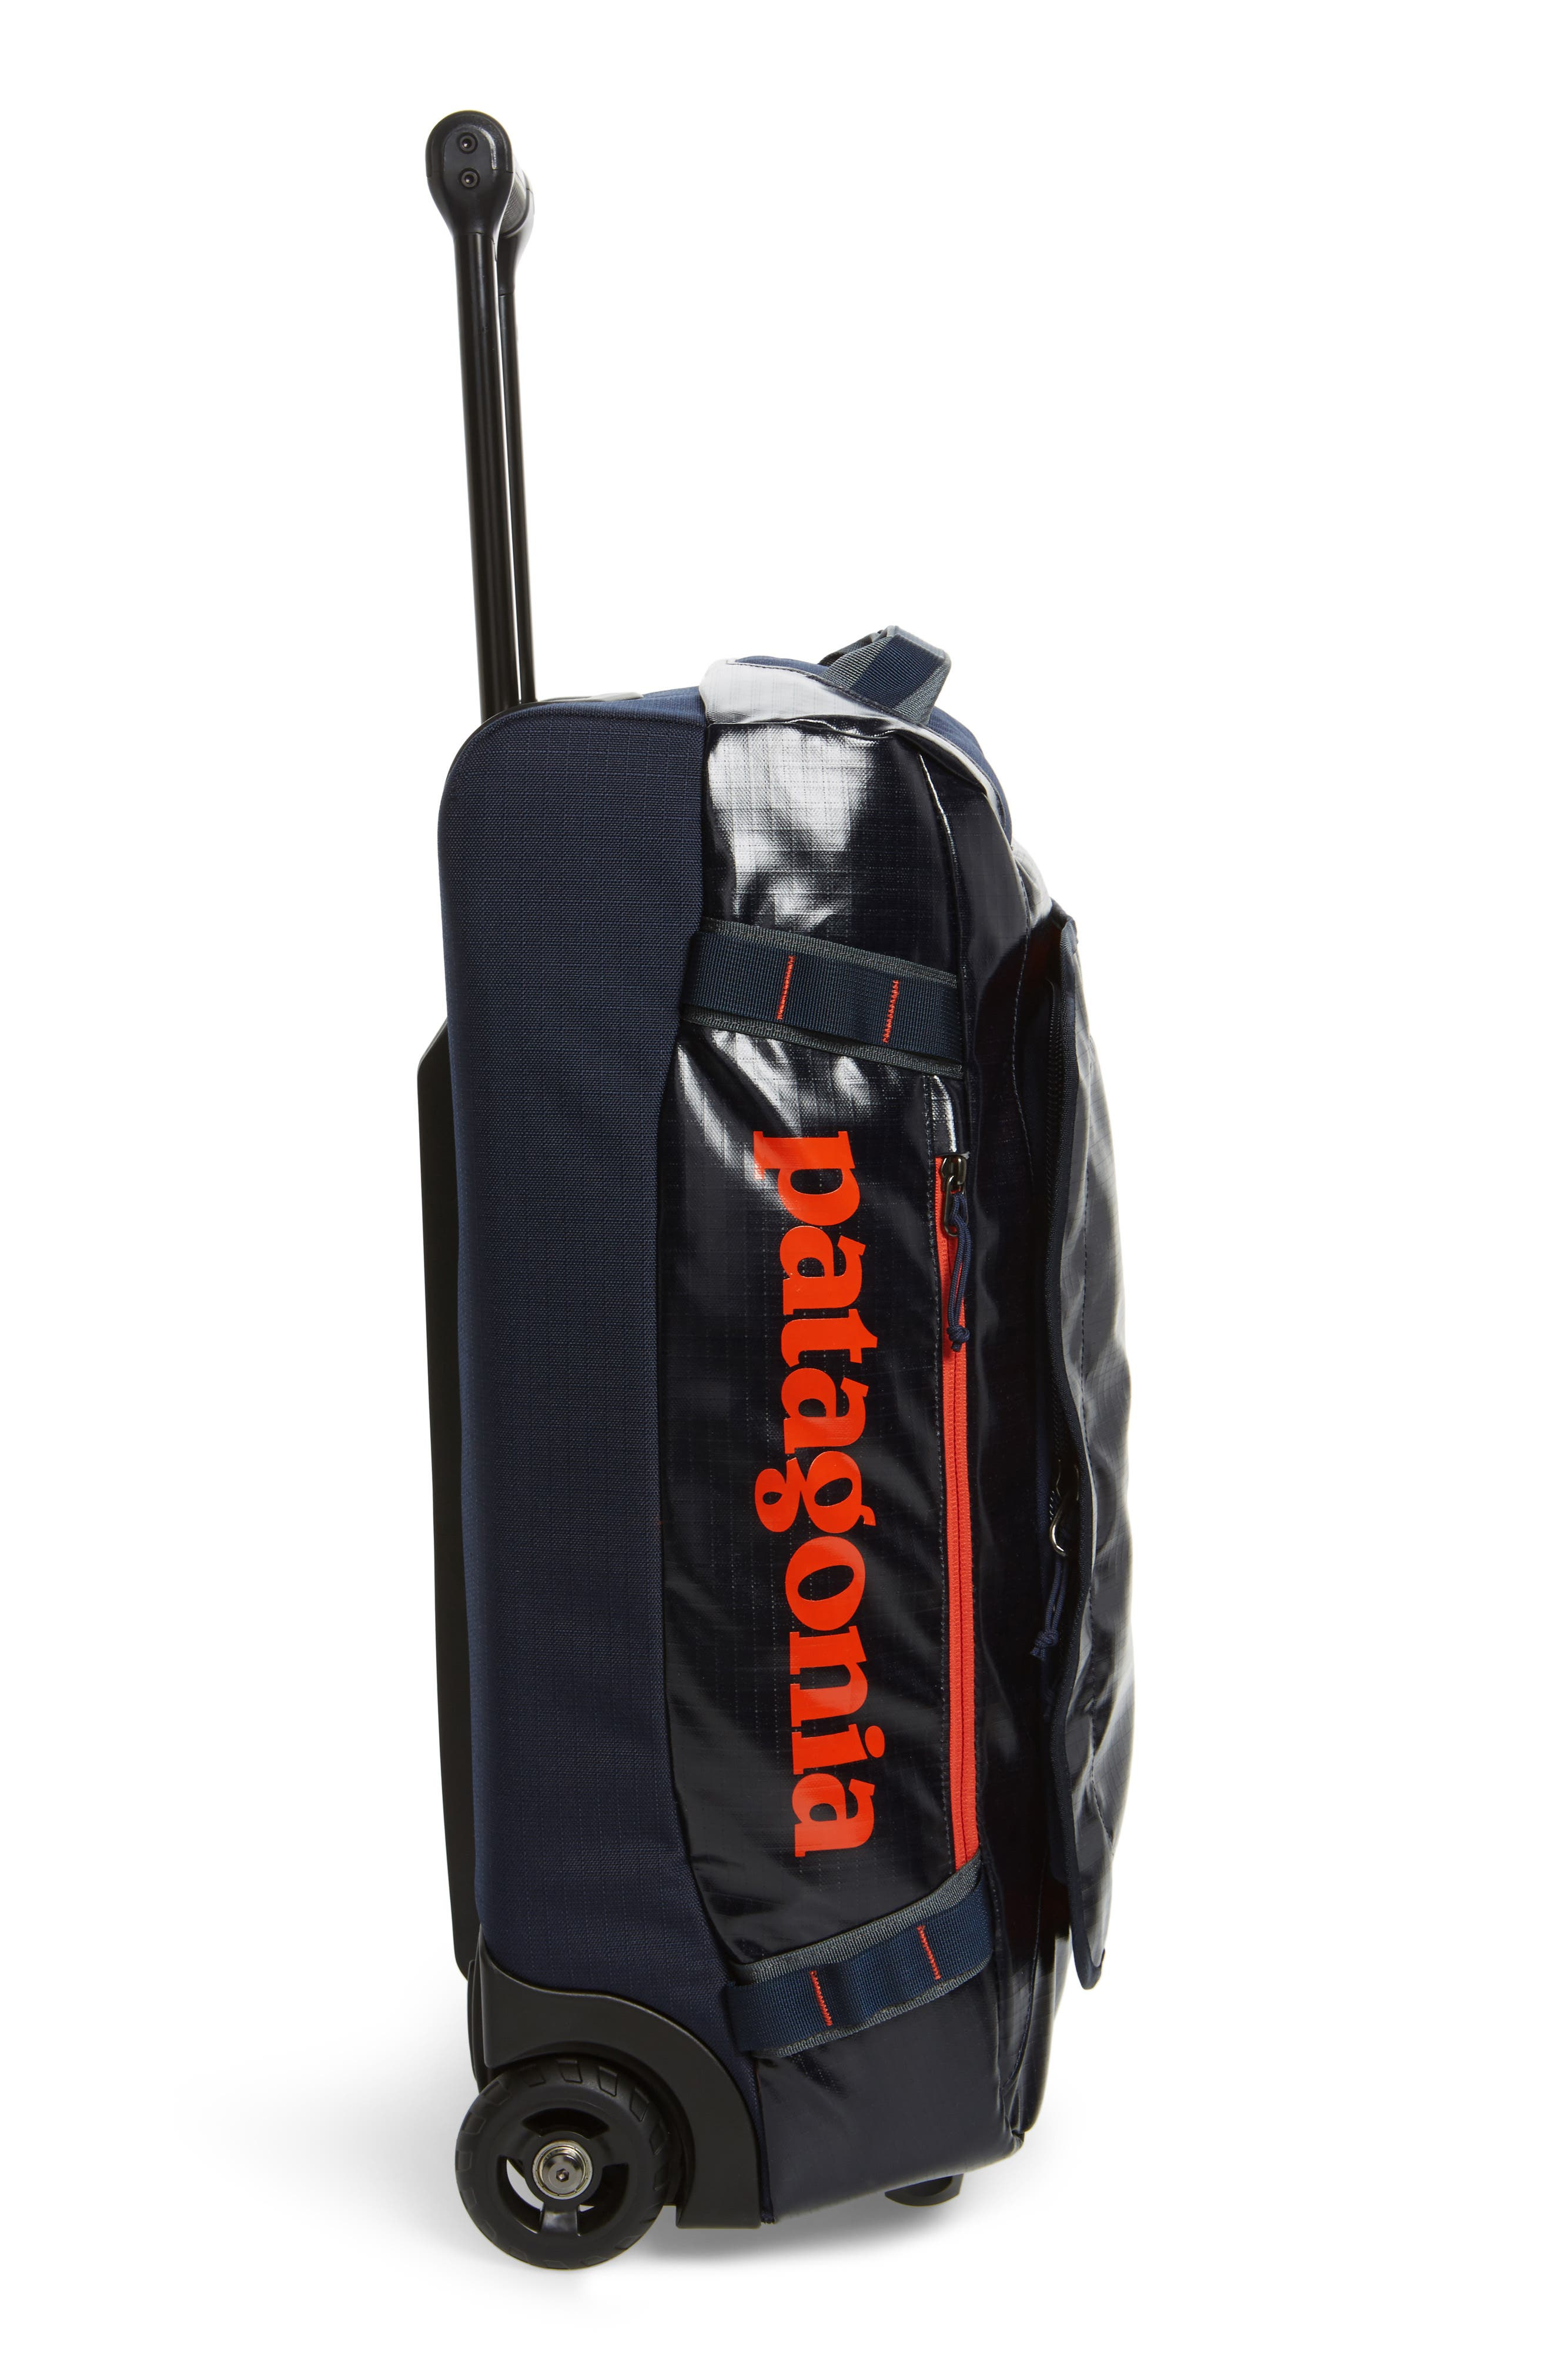 Black Hole 40-Liter Rolling Duffel Bag,                             Alternate thumbnail 3, color,                             Navy Blue/ Paintbrush Red